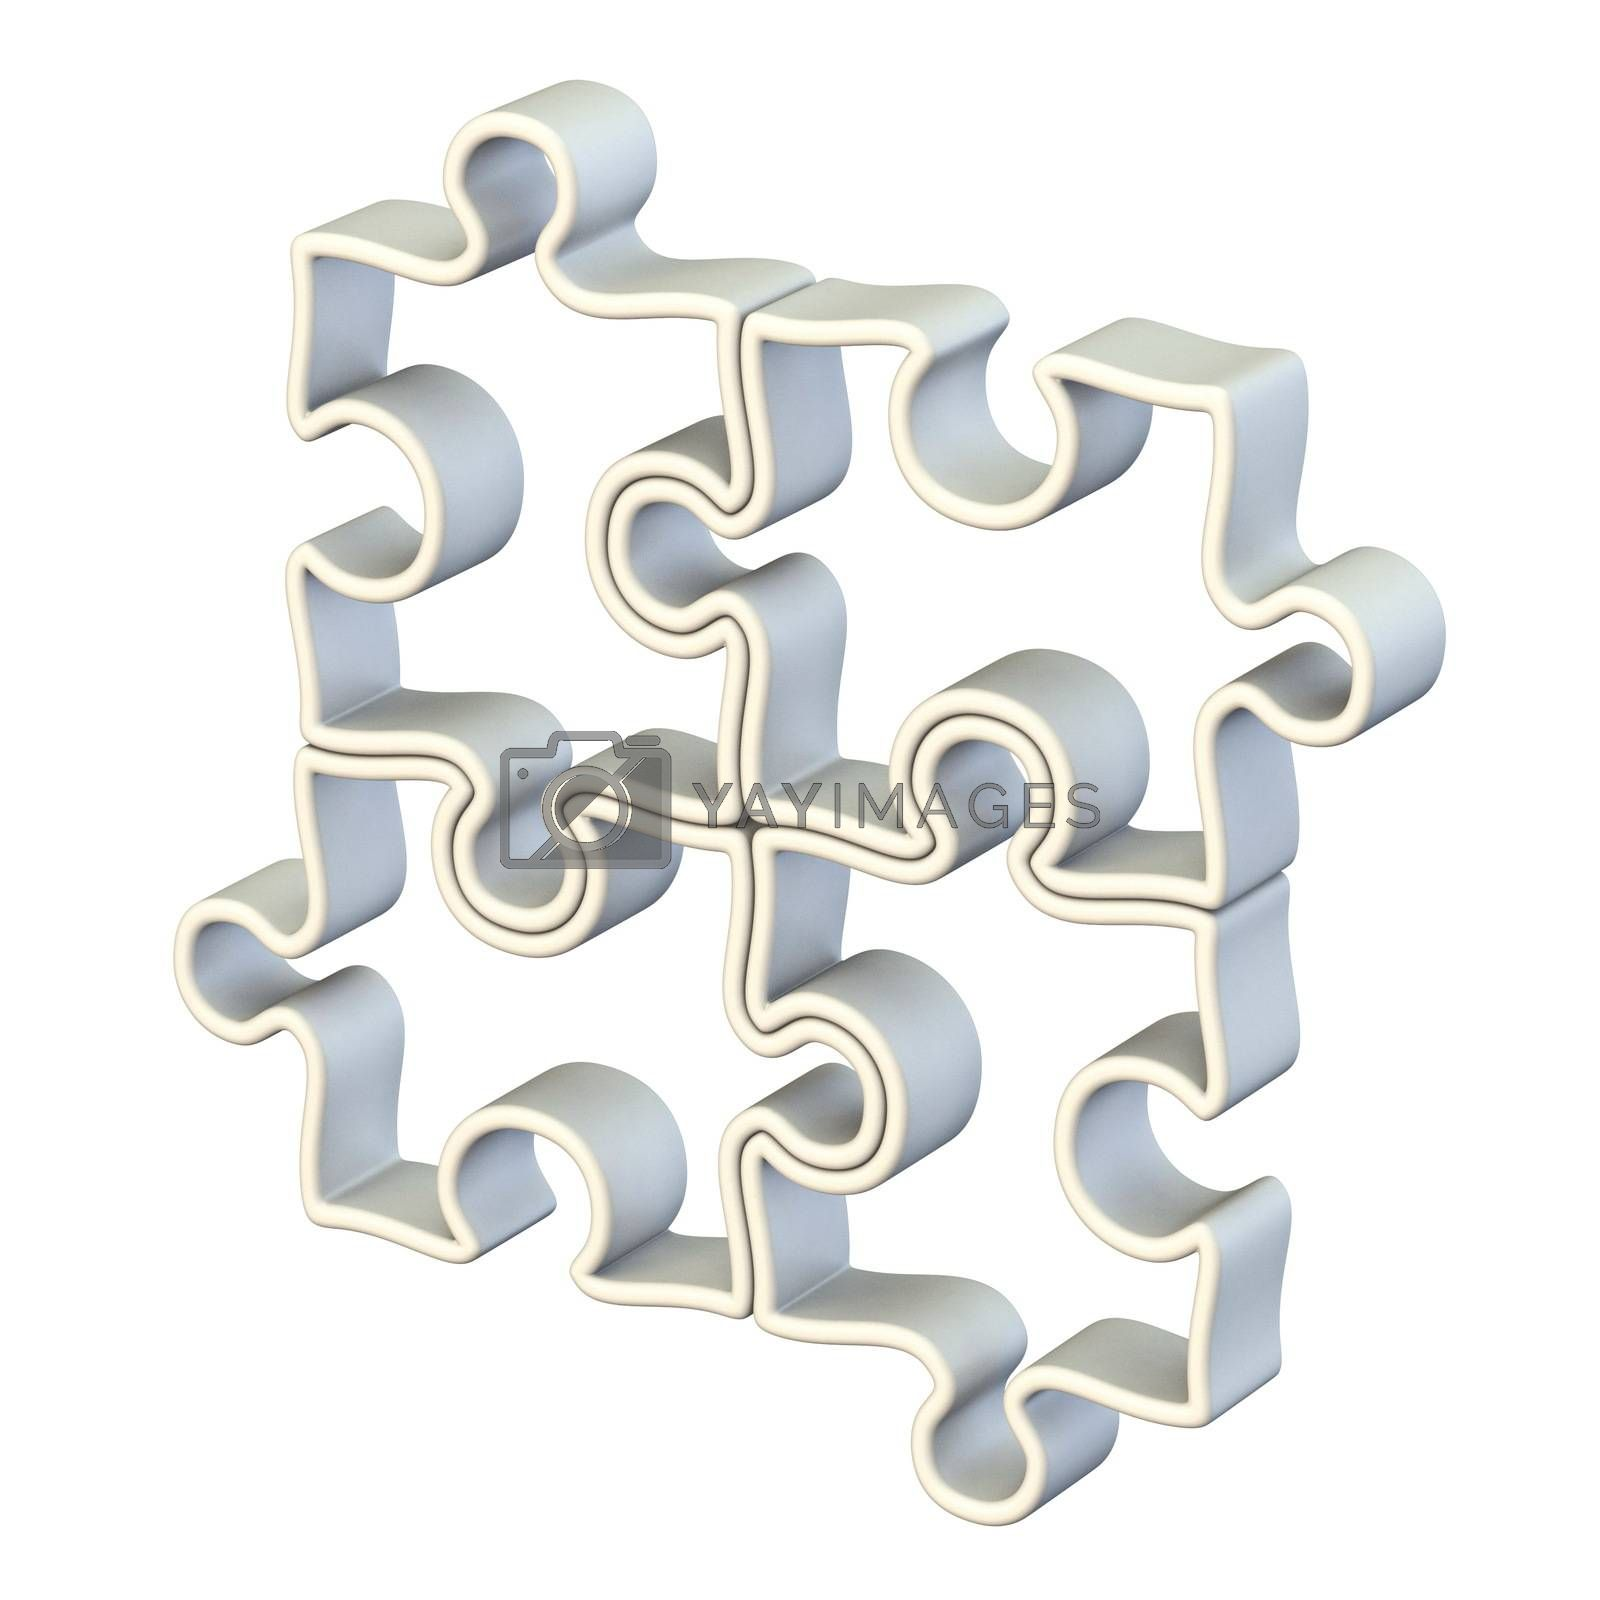 Four white jigsaw puzzle 3D render illustration isolated on white background